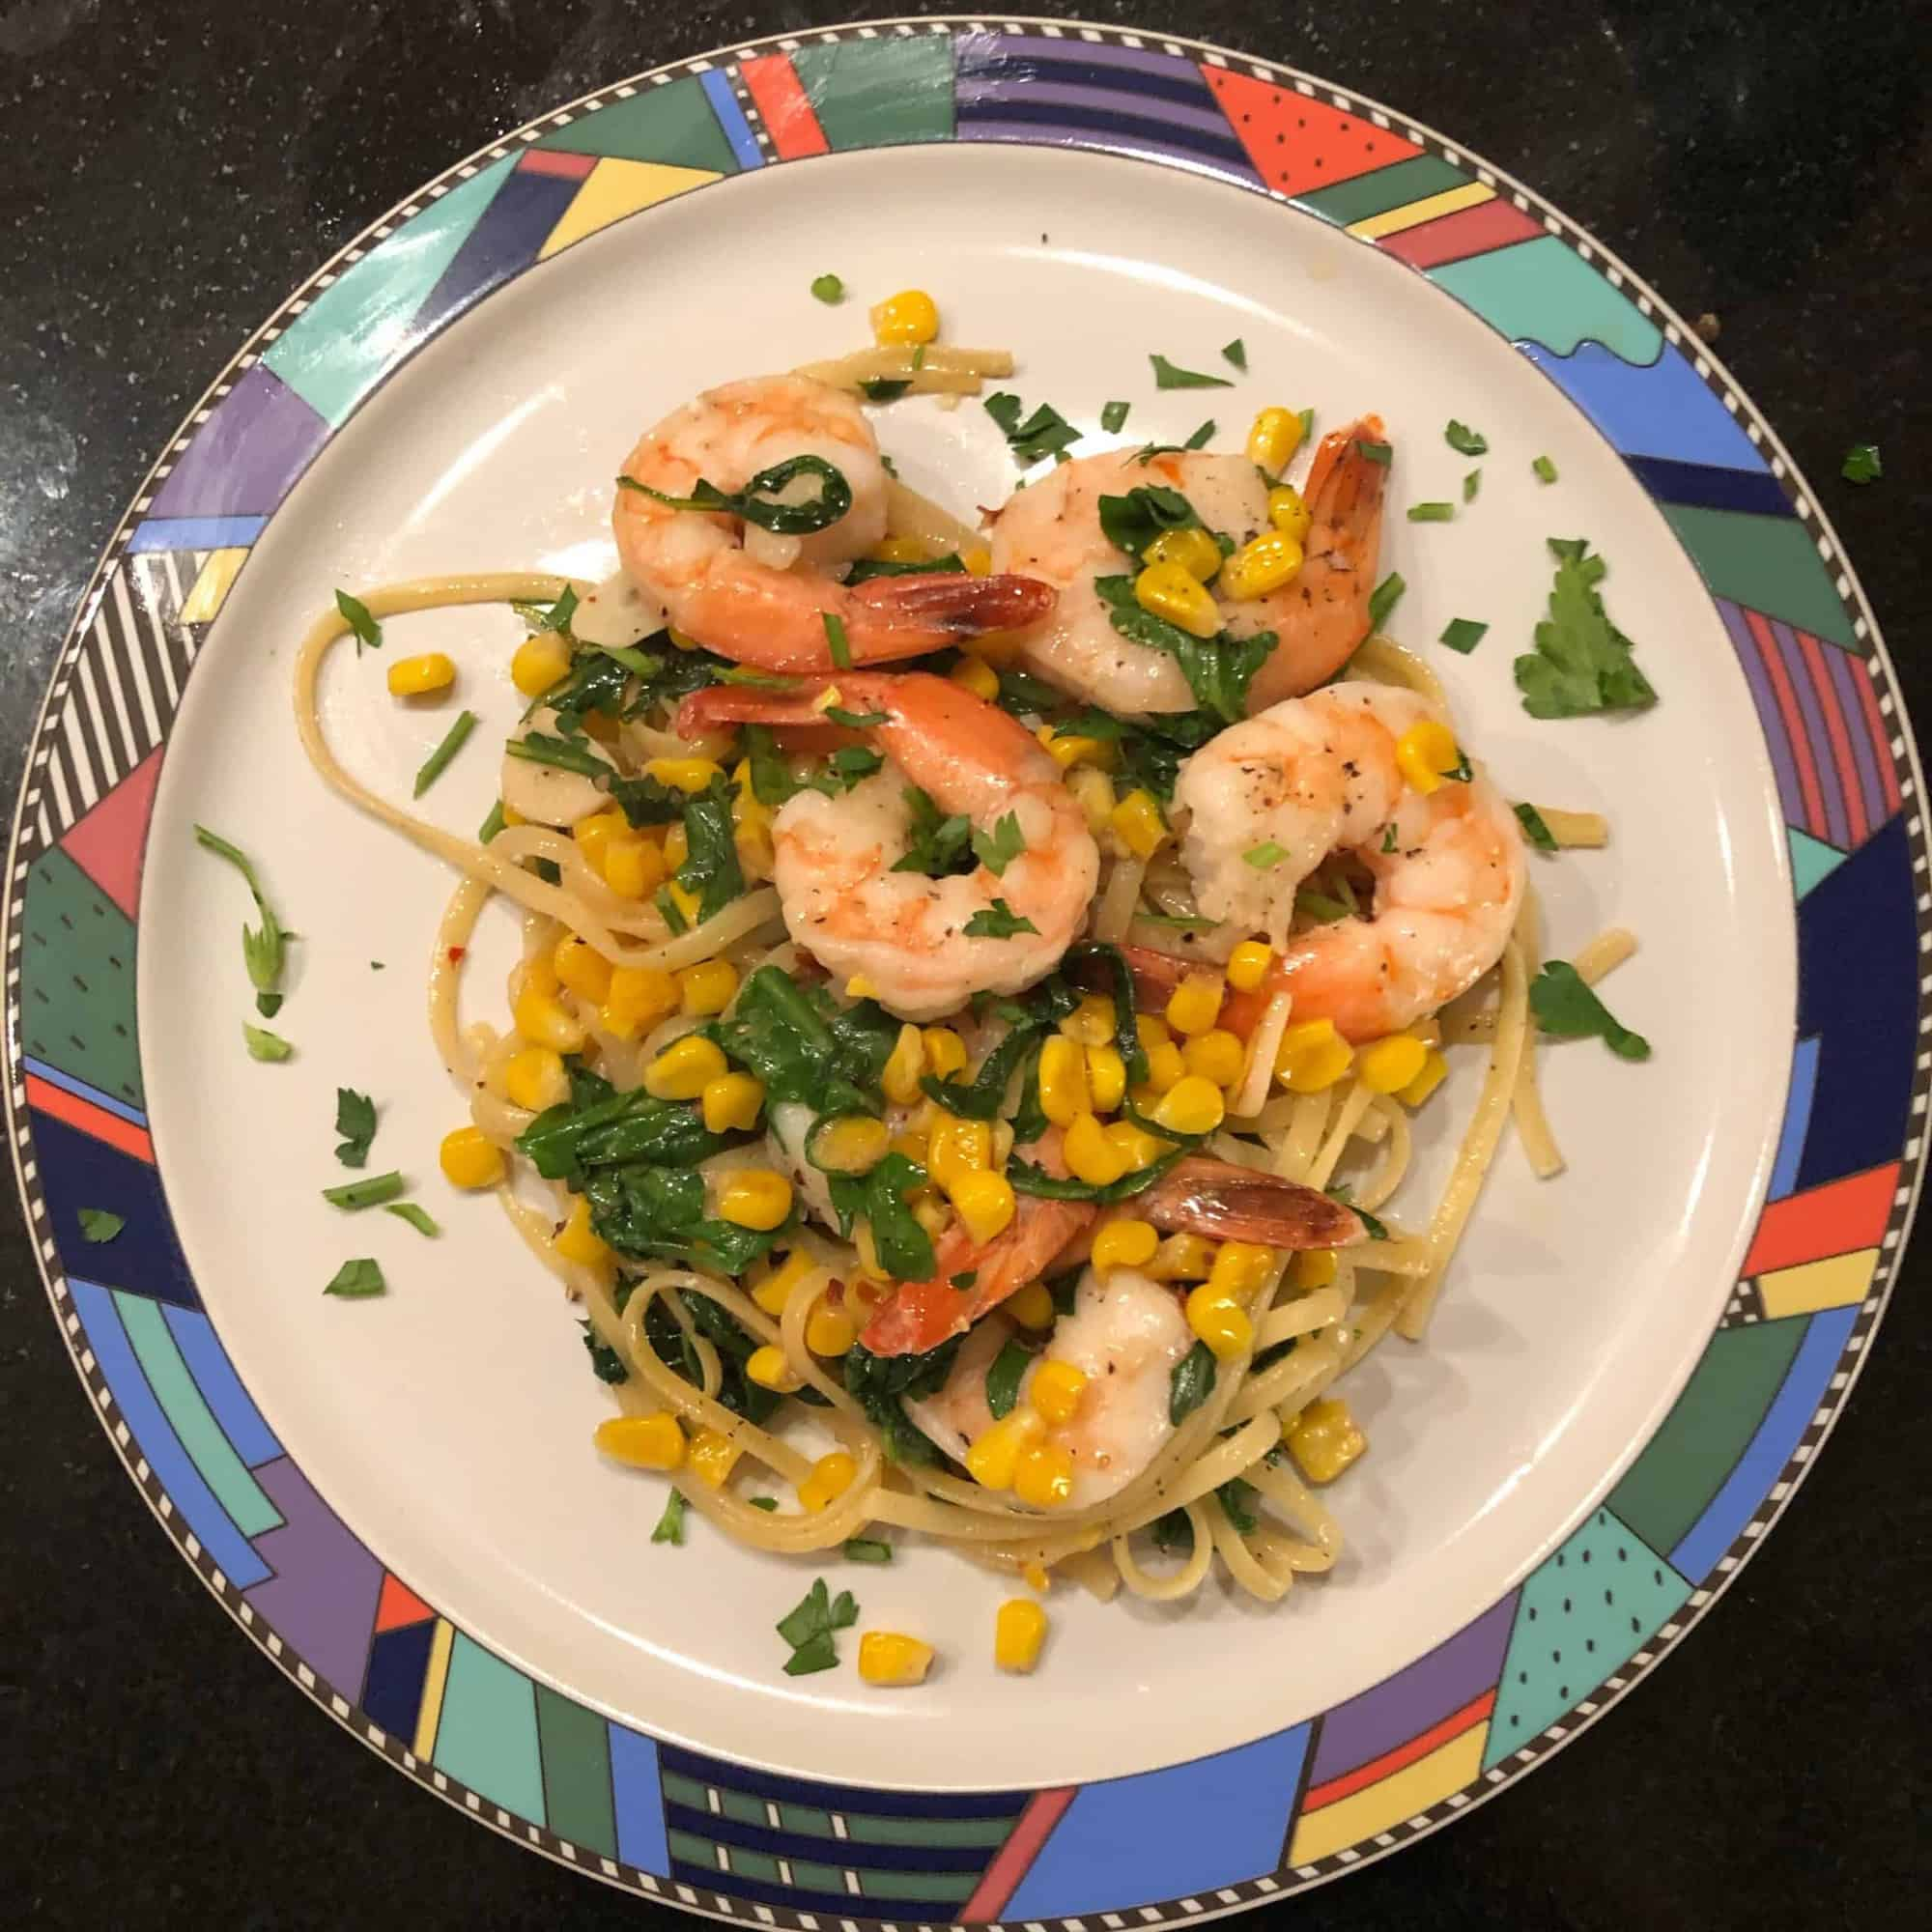 Shrimp Linguine with Herbs, Corn and Arugula